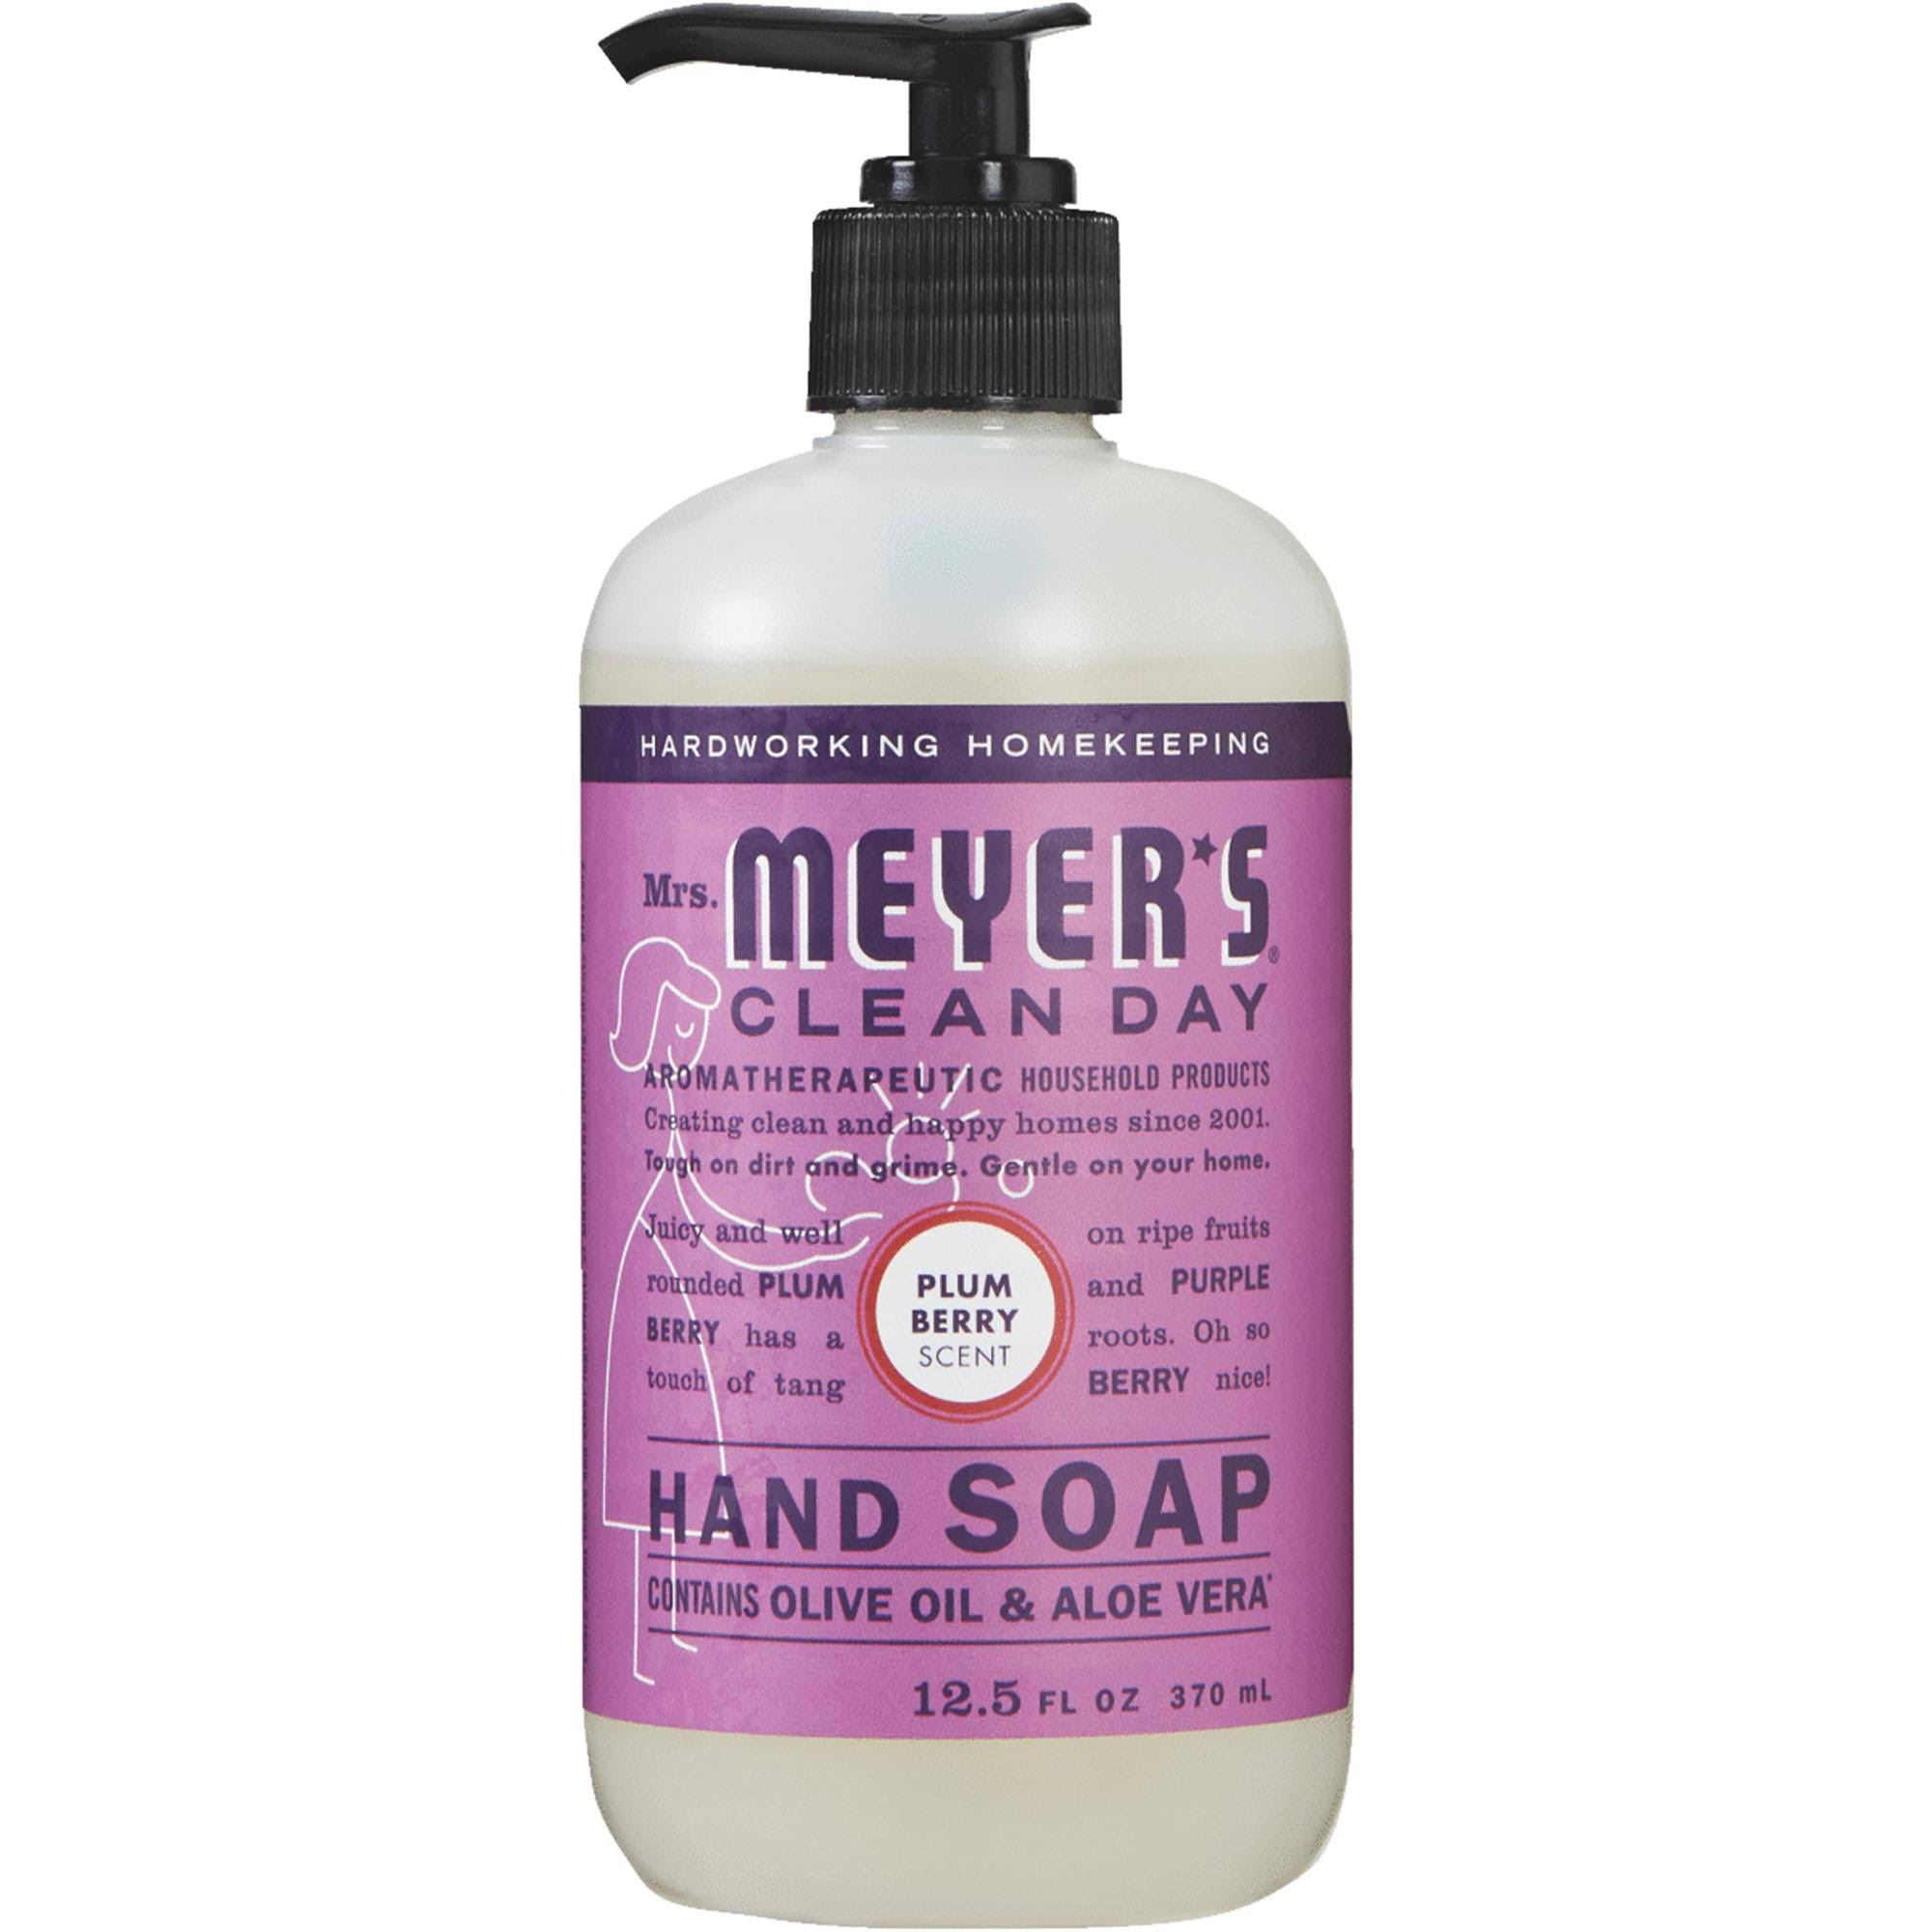 Mrs. Meyer's Clean Day Liquid Hand Soap 12.5 oz.